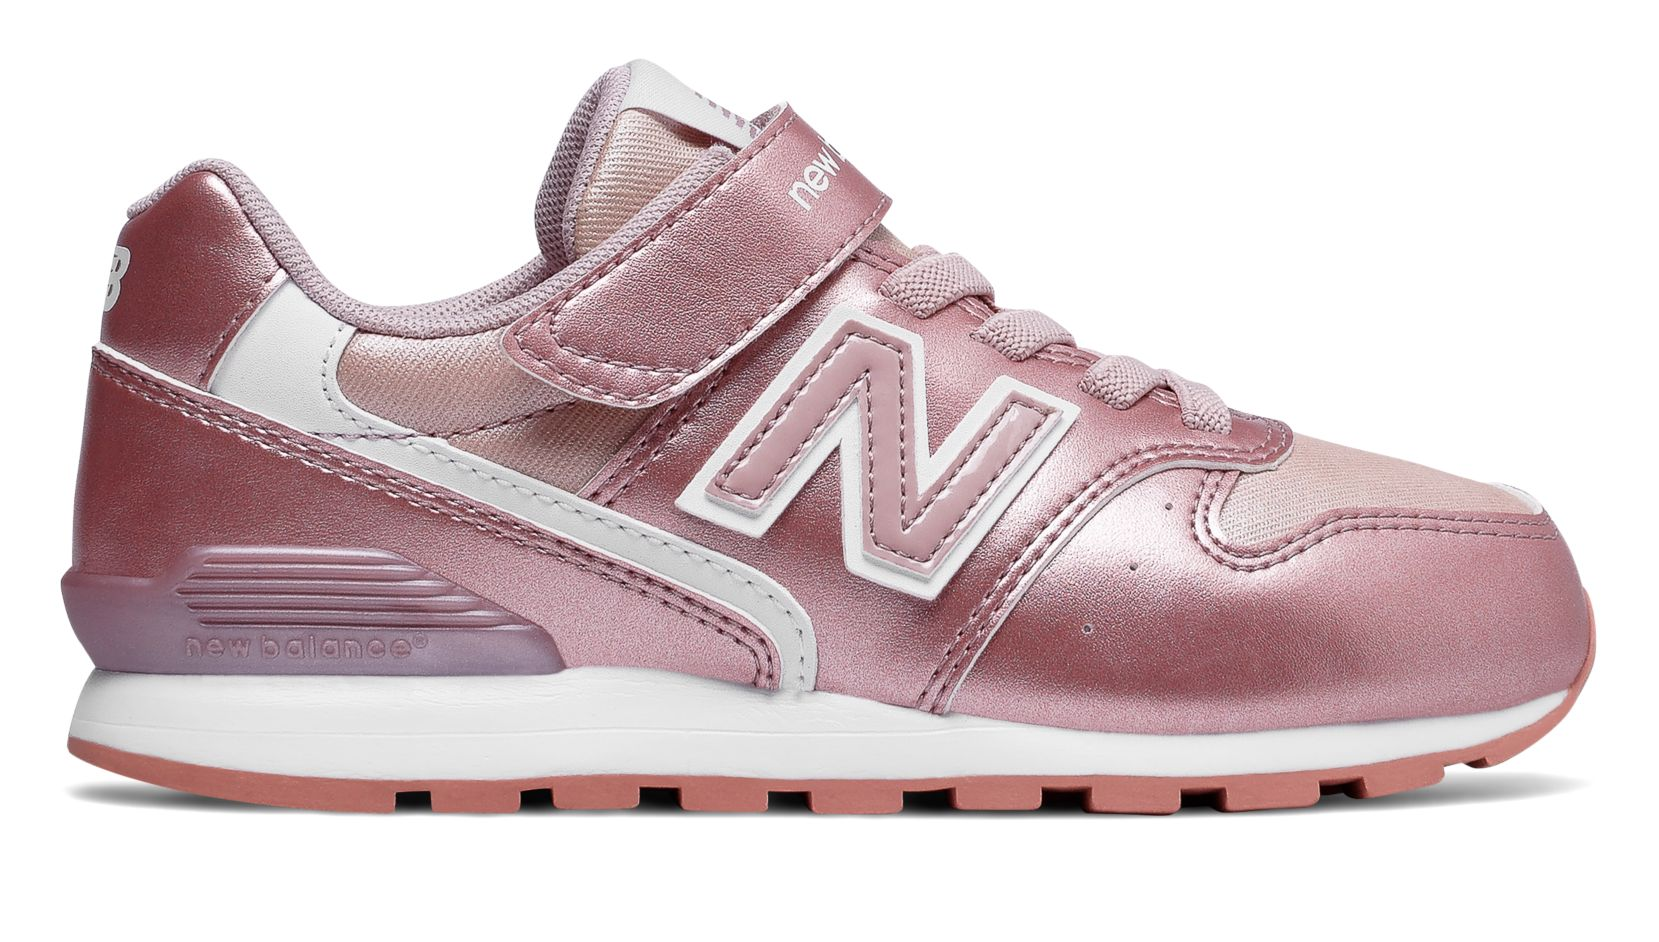 new balance 996 rose gold